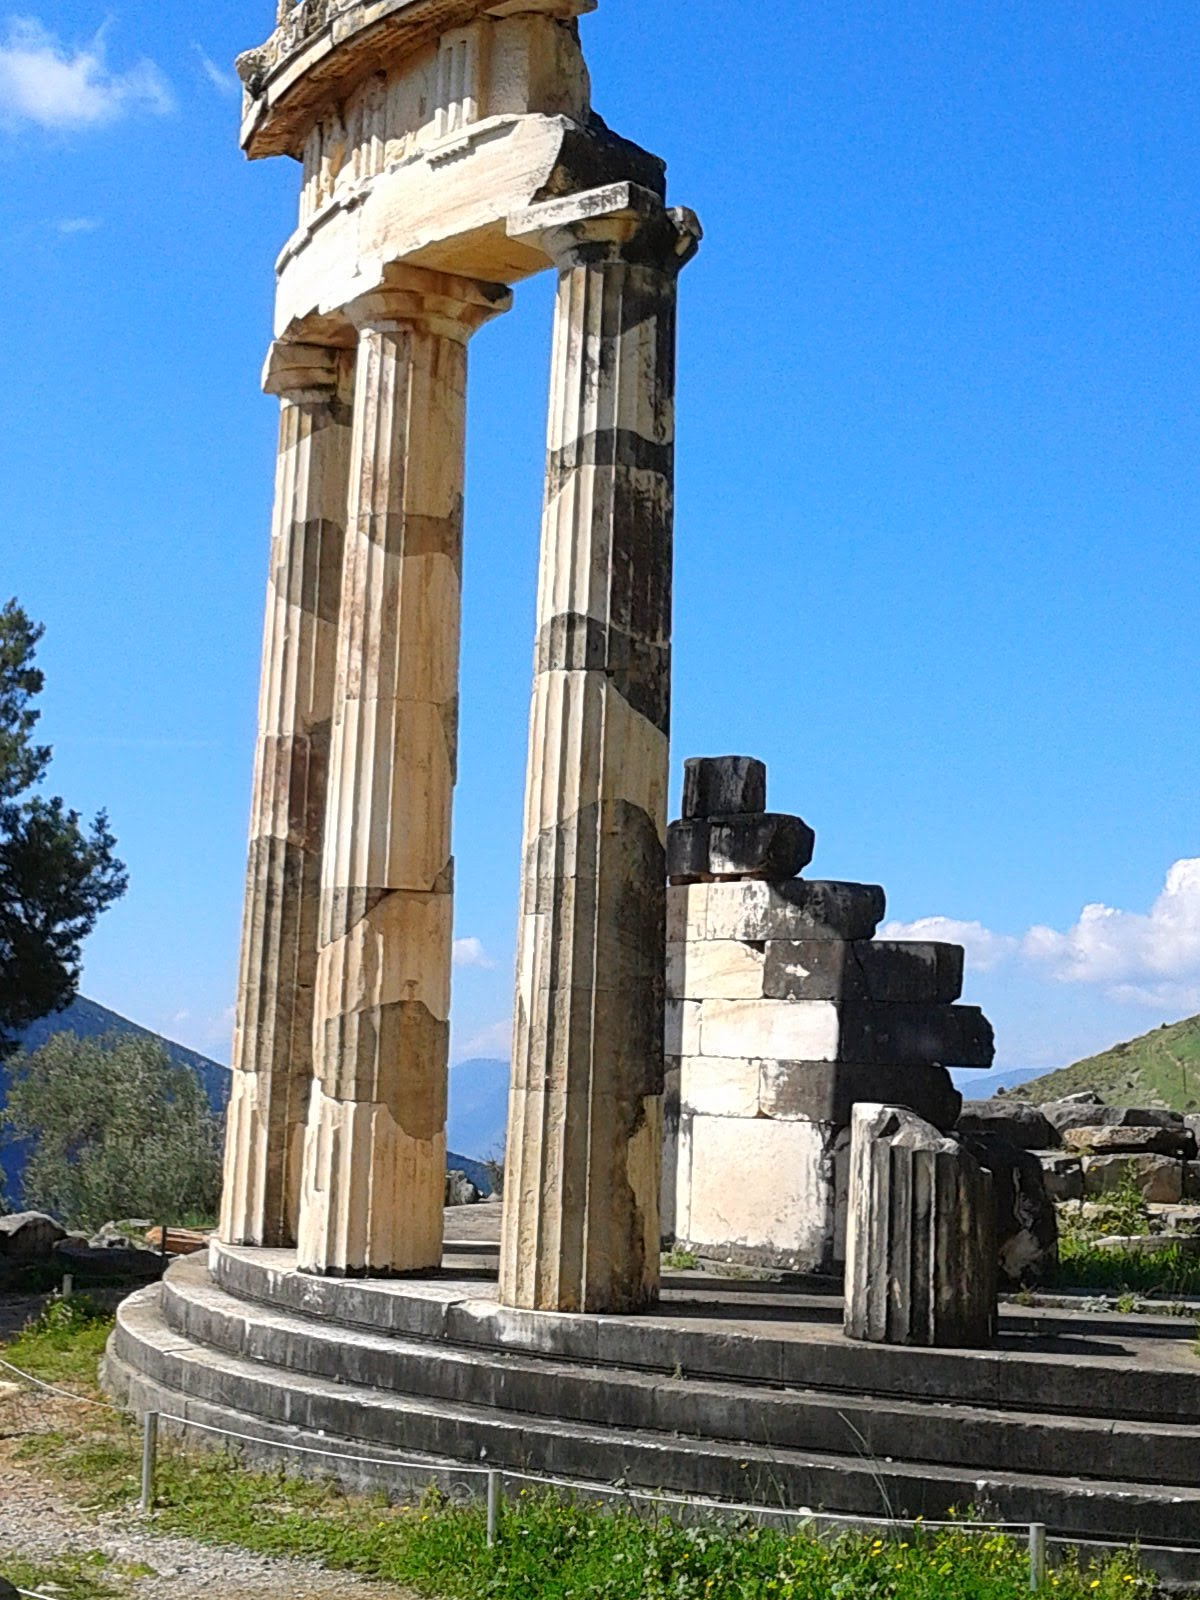 Delphi - The Iconic Temple of Athena